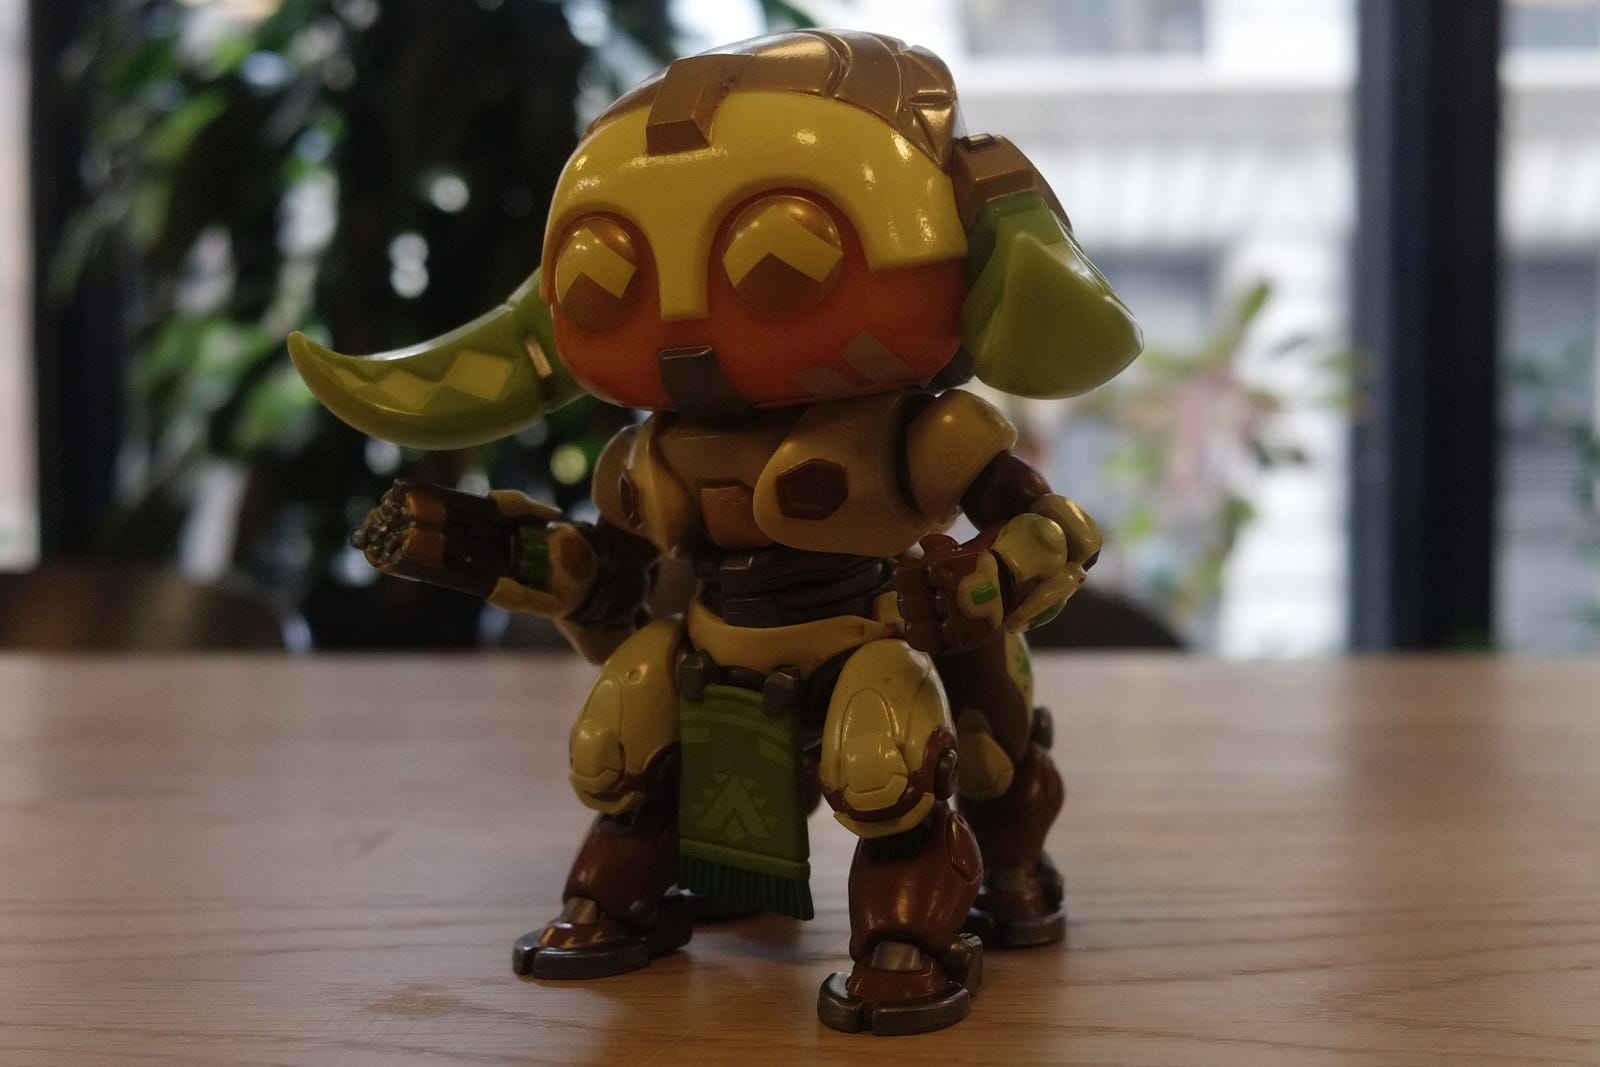 Funko Orisa shot with the DxO One, metered for the highlights and cropped for comparison. No other edits made.